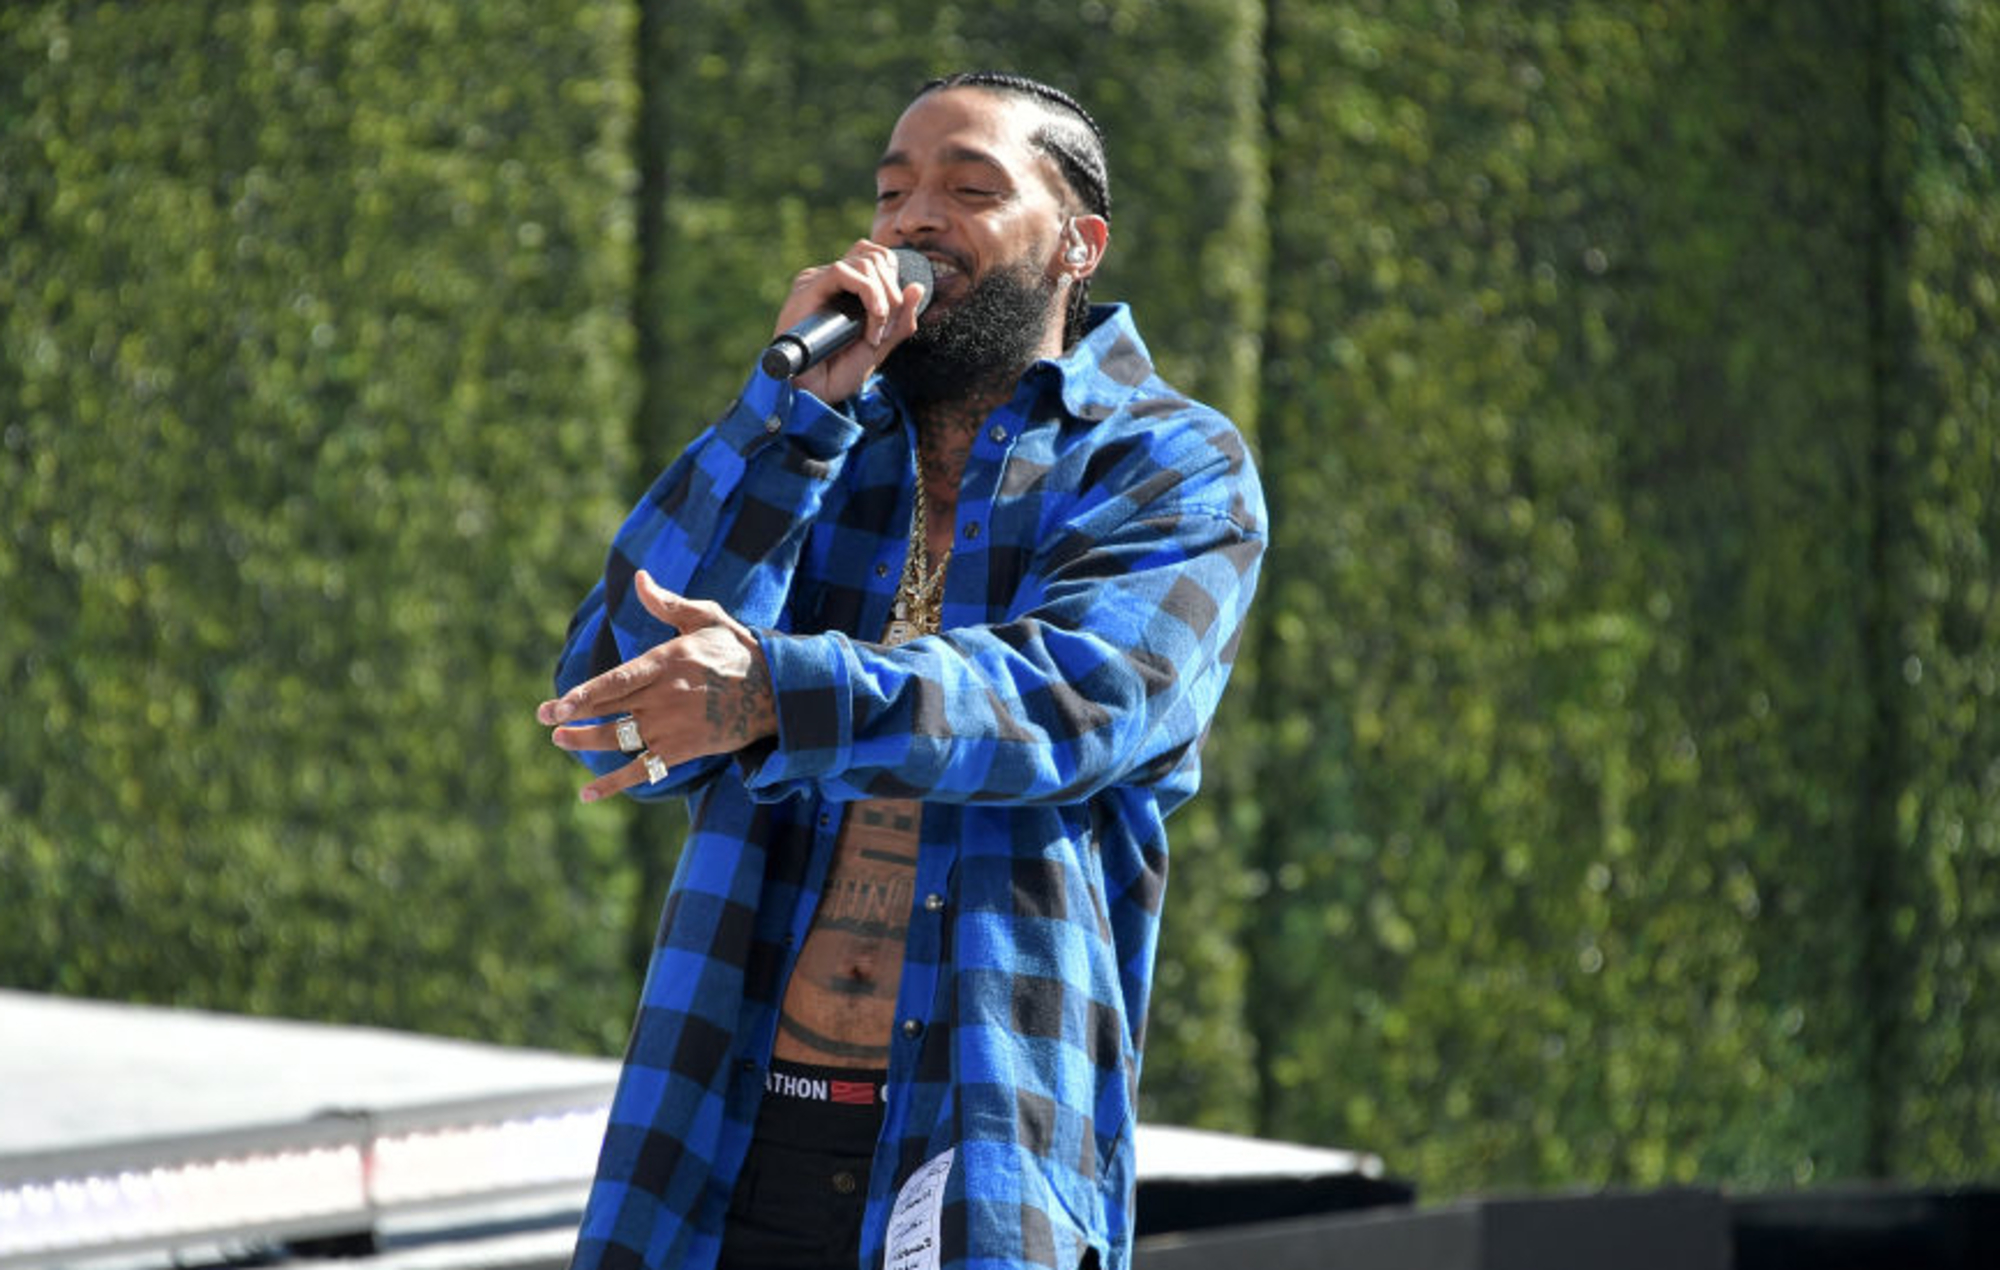 New Nipsey Hussle album is on the way featuring Dave East and Trae Tha Truth